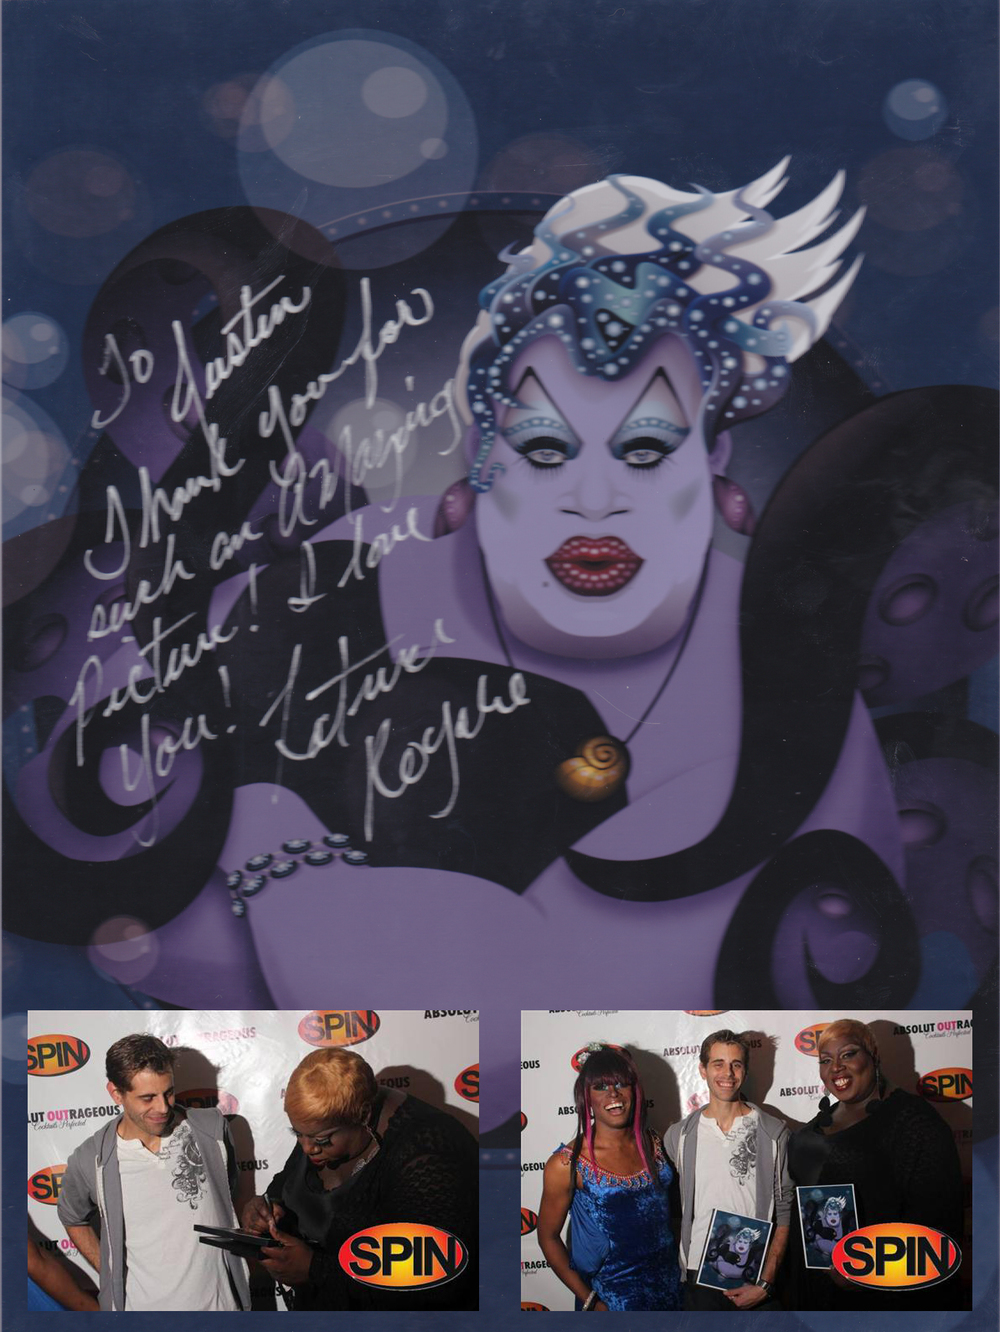 Meeting Latrice Royale